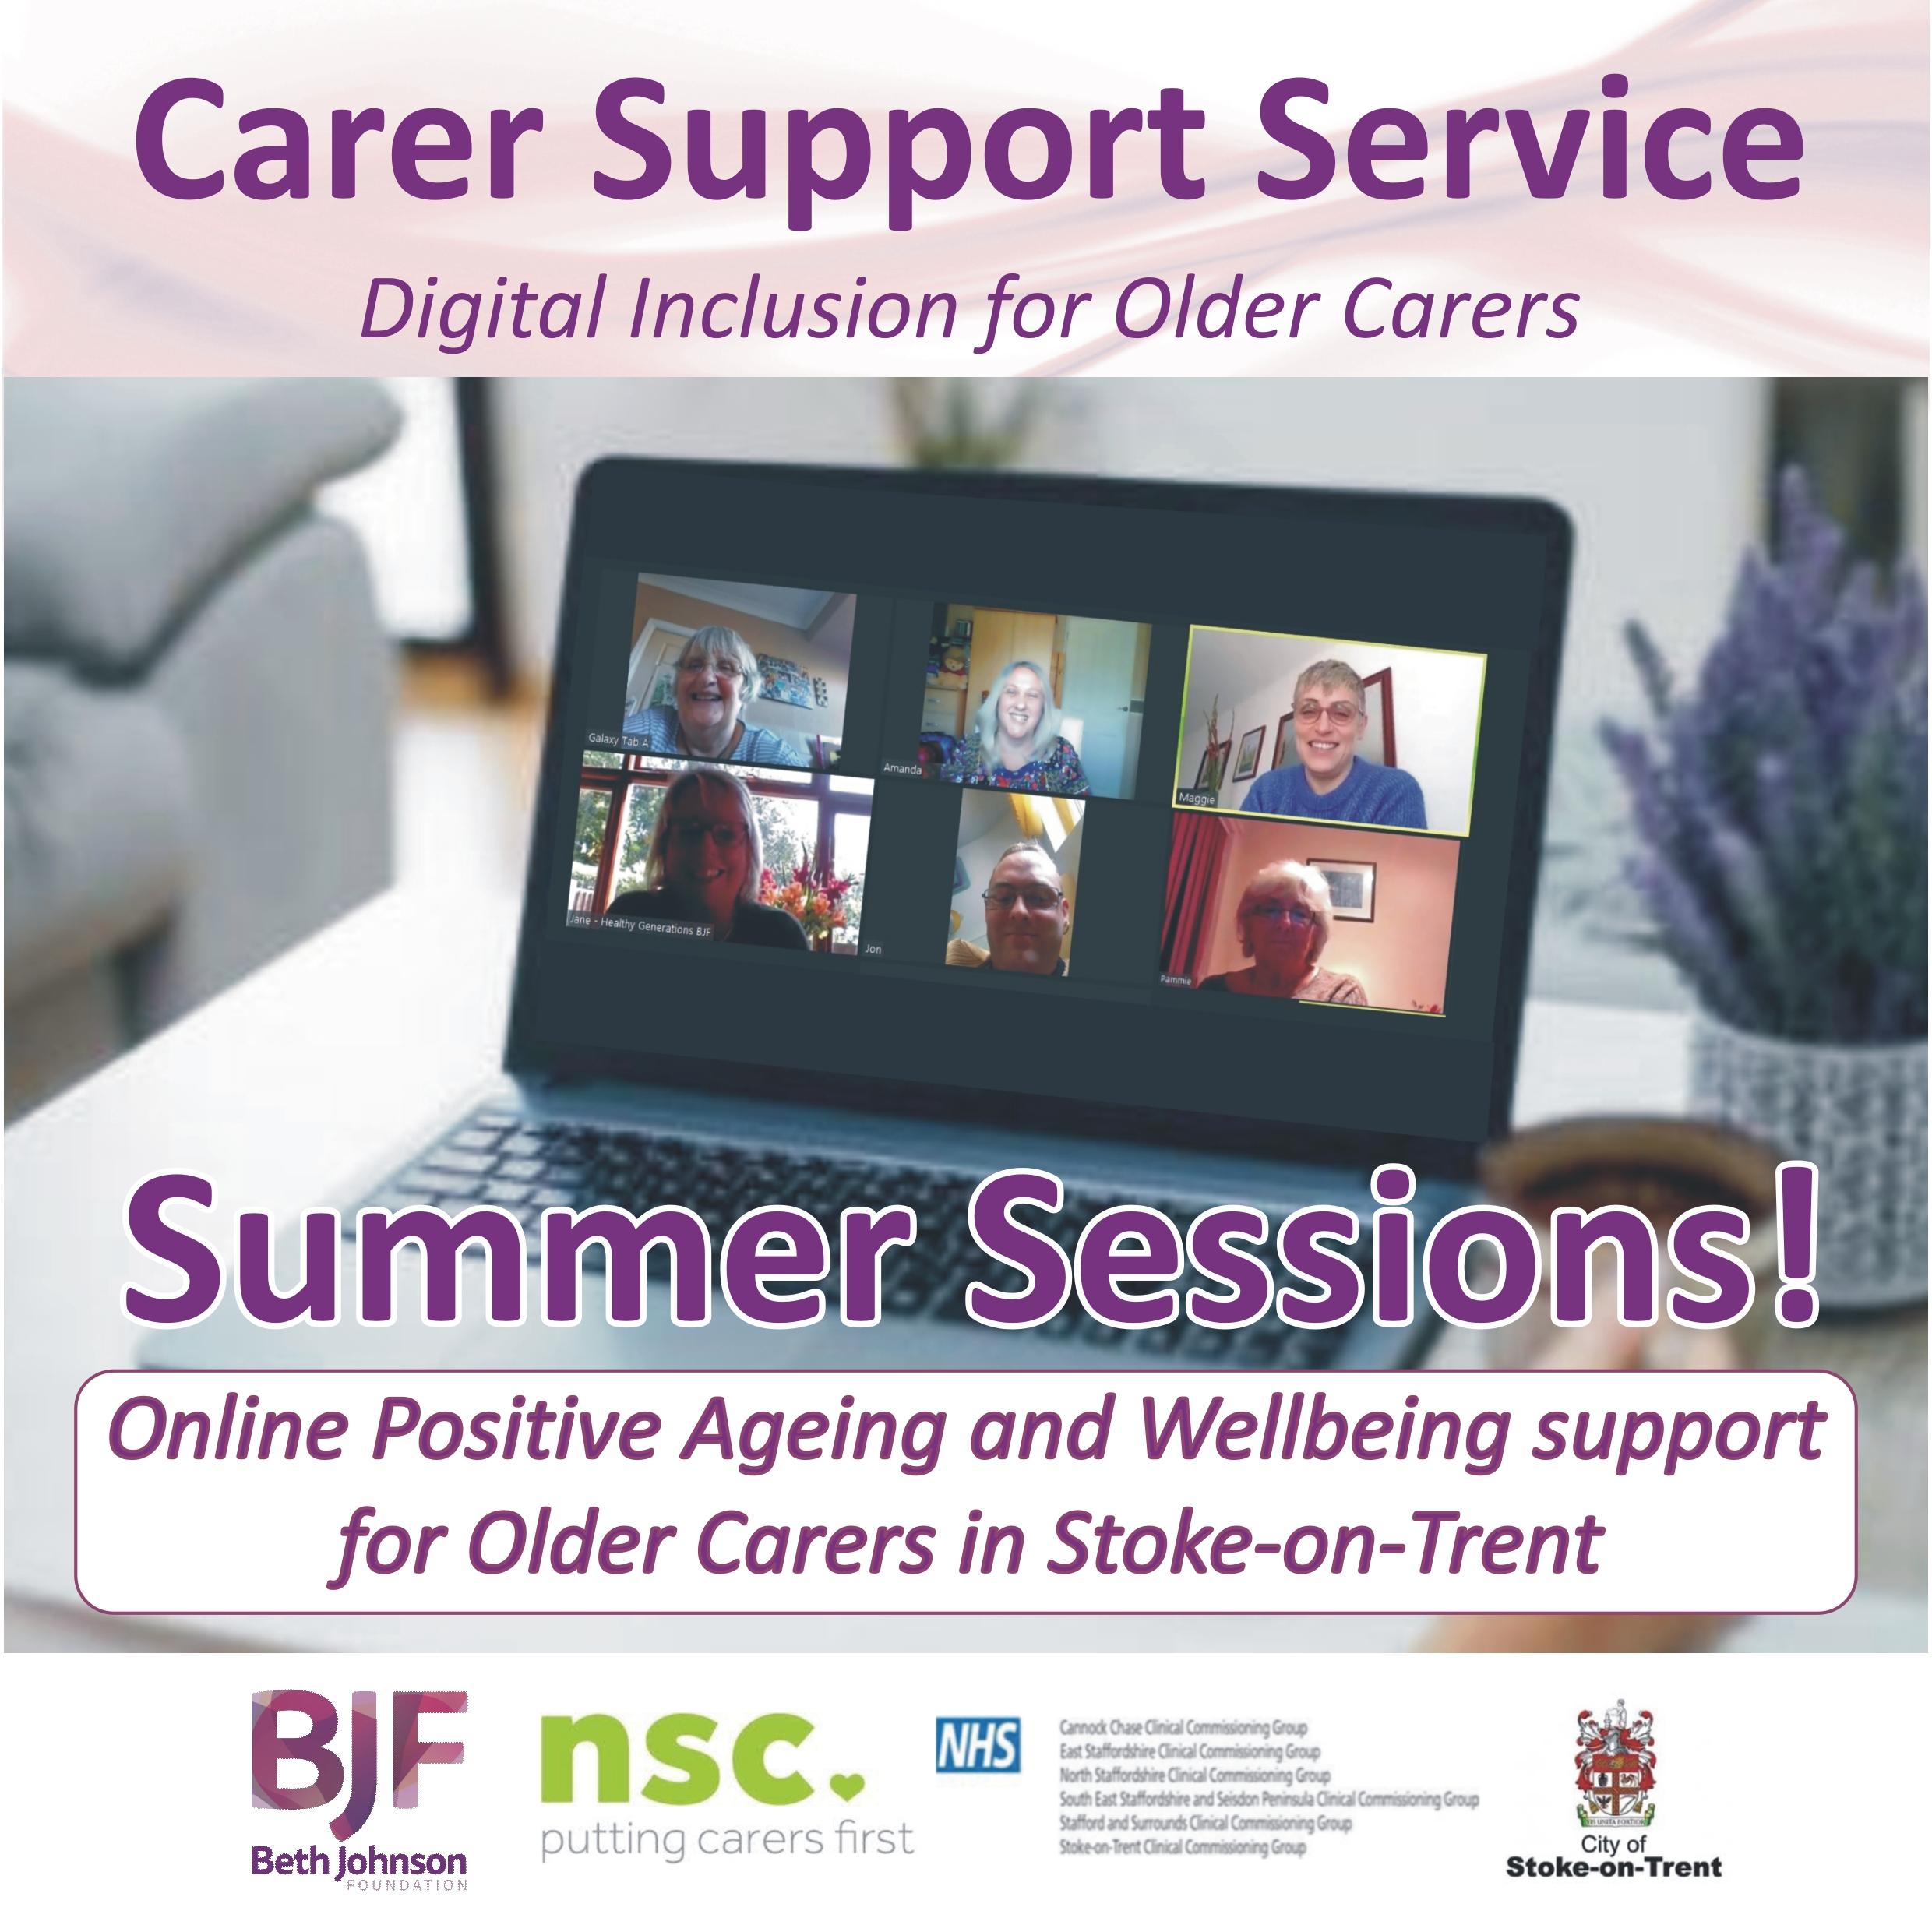 New Summer Sessions for Carers